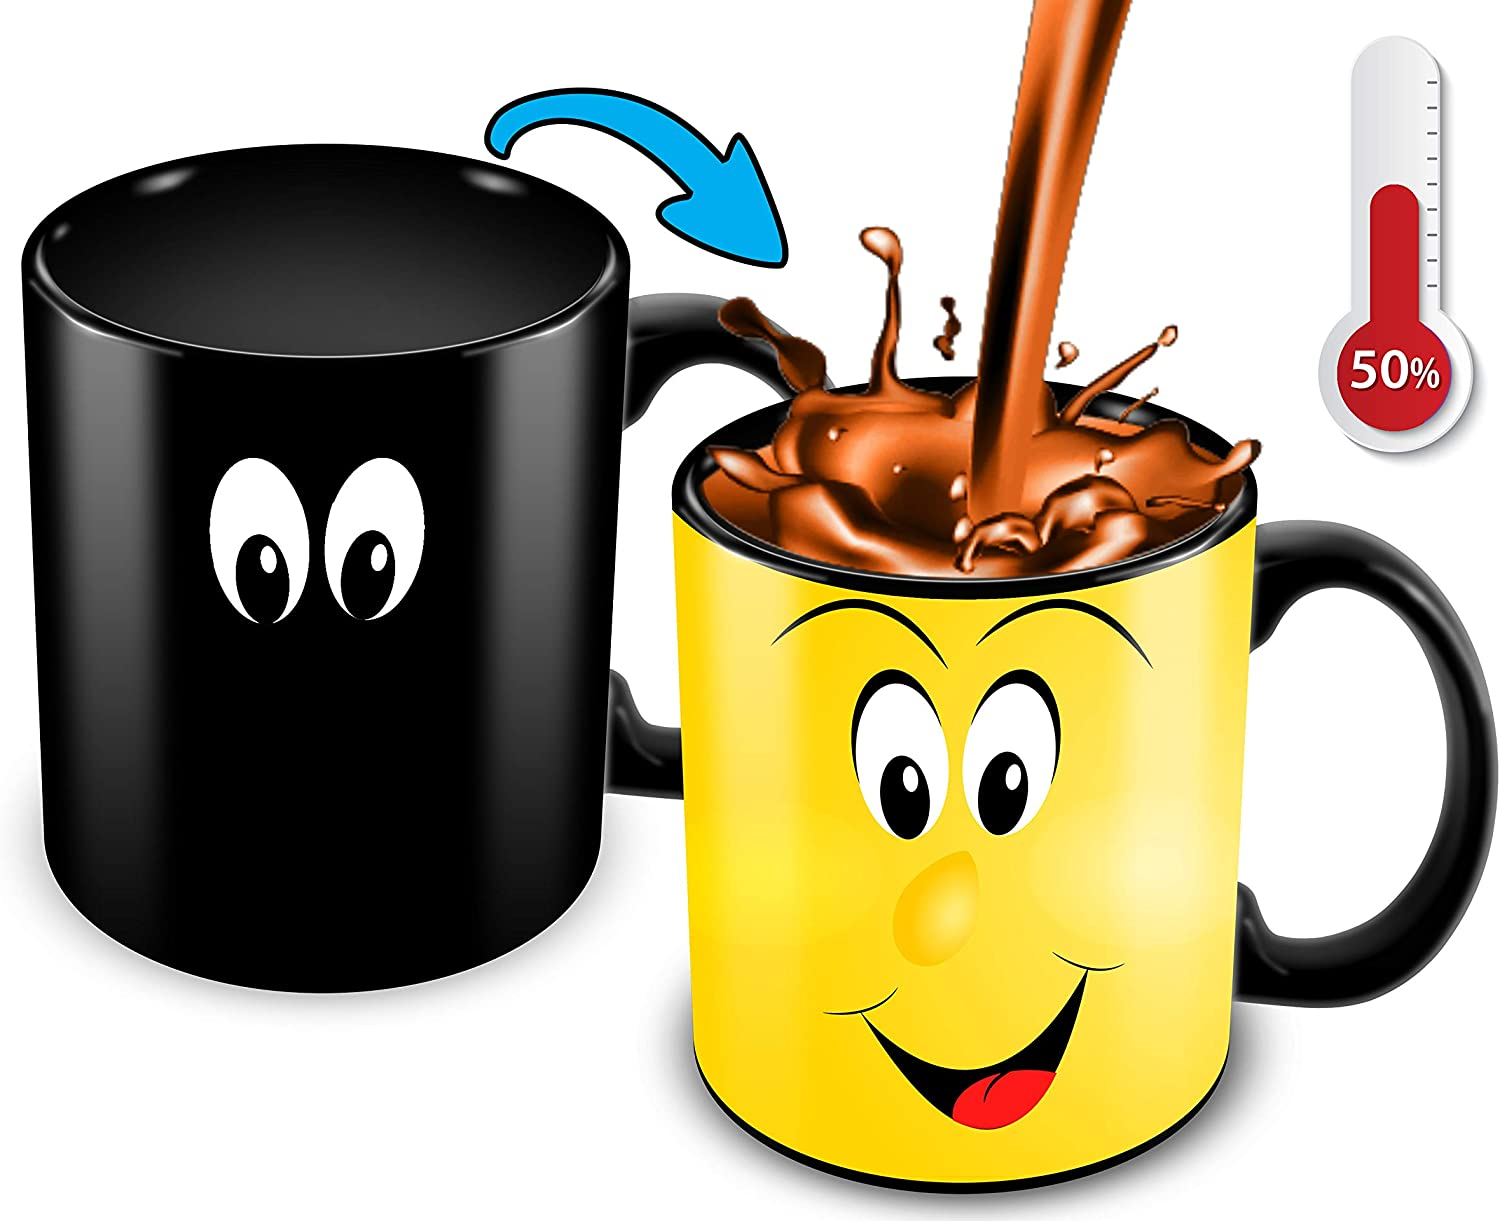 Cortunex Heat Changing Mug | 11 Oz Color Changing Coffee Mug | Funny Coffee Mug With Funny Yellow Cartoon Smiley Face | Great For Him Or Her Novelty Color Changing Mug